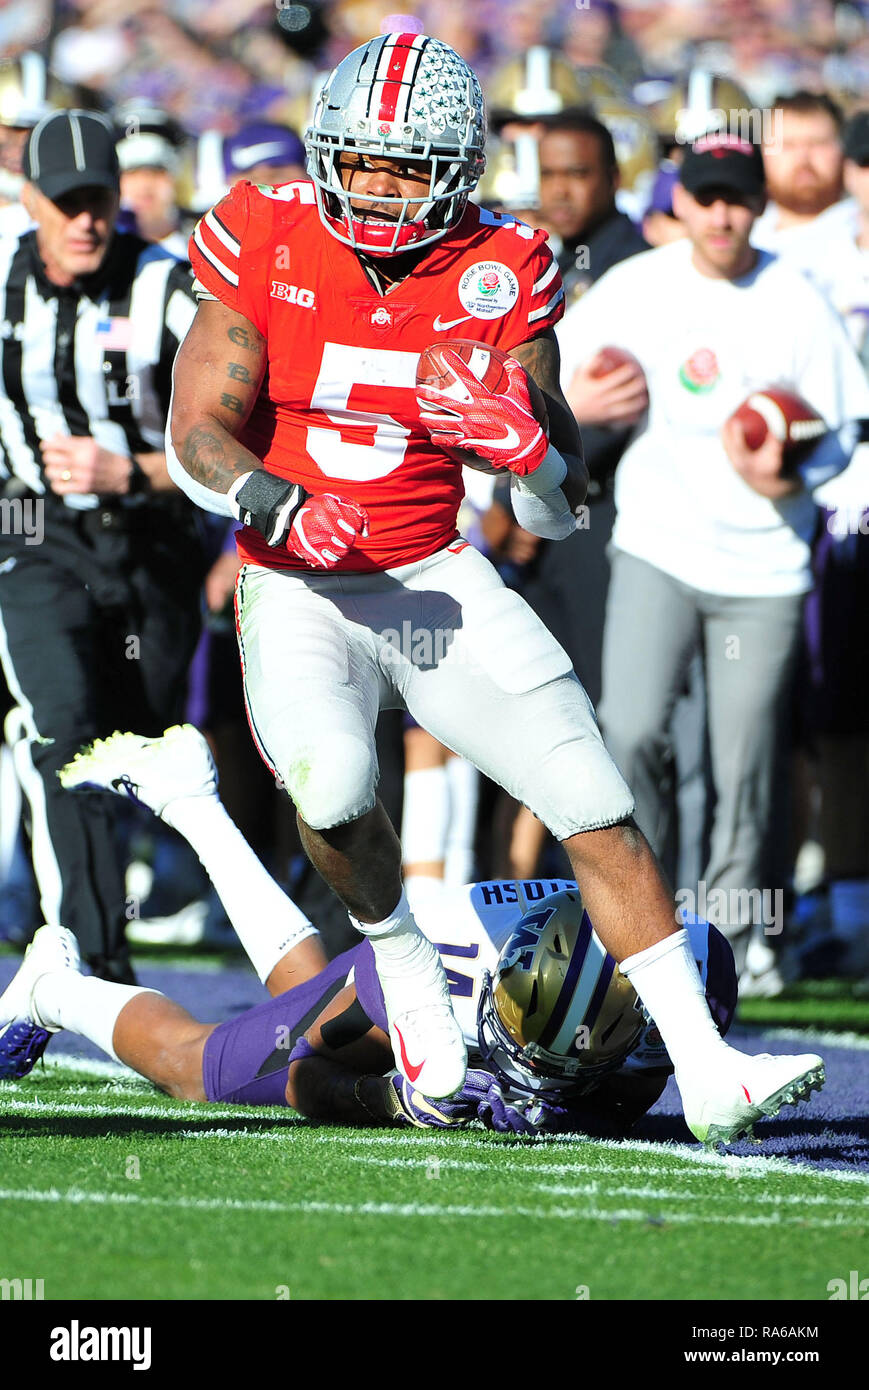 Pasadena, CA. 01st Jan, 2019. Ohio State Buckeyes Running Back Mike Weber #5 during the 2019 Rose Bowl game between the Washington Huskies and the Ohio State Buckeyes at the Rose Bowl Stadium in Pasadena, CA. John Green/CSM/Alamy Live News Credit: Cal Sport Media/Alamy Live News Stock Photo